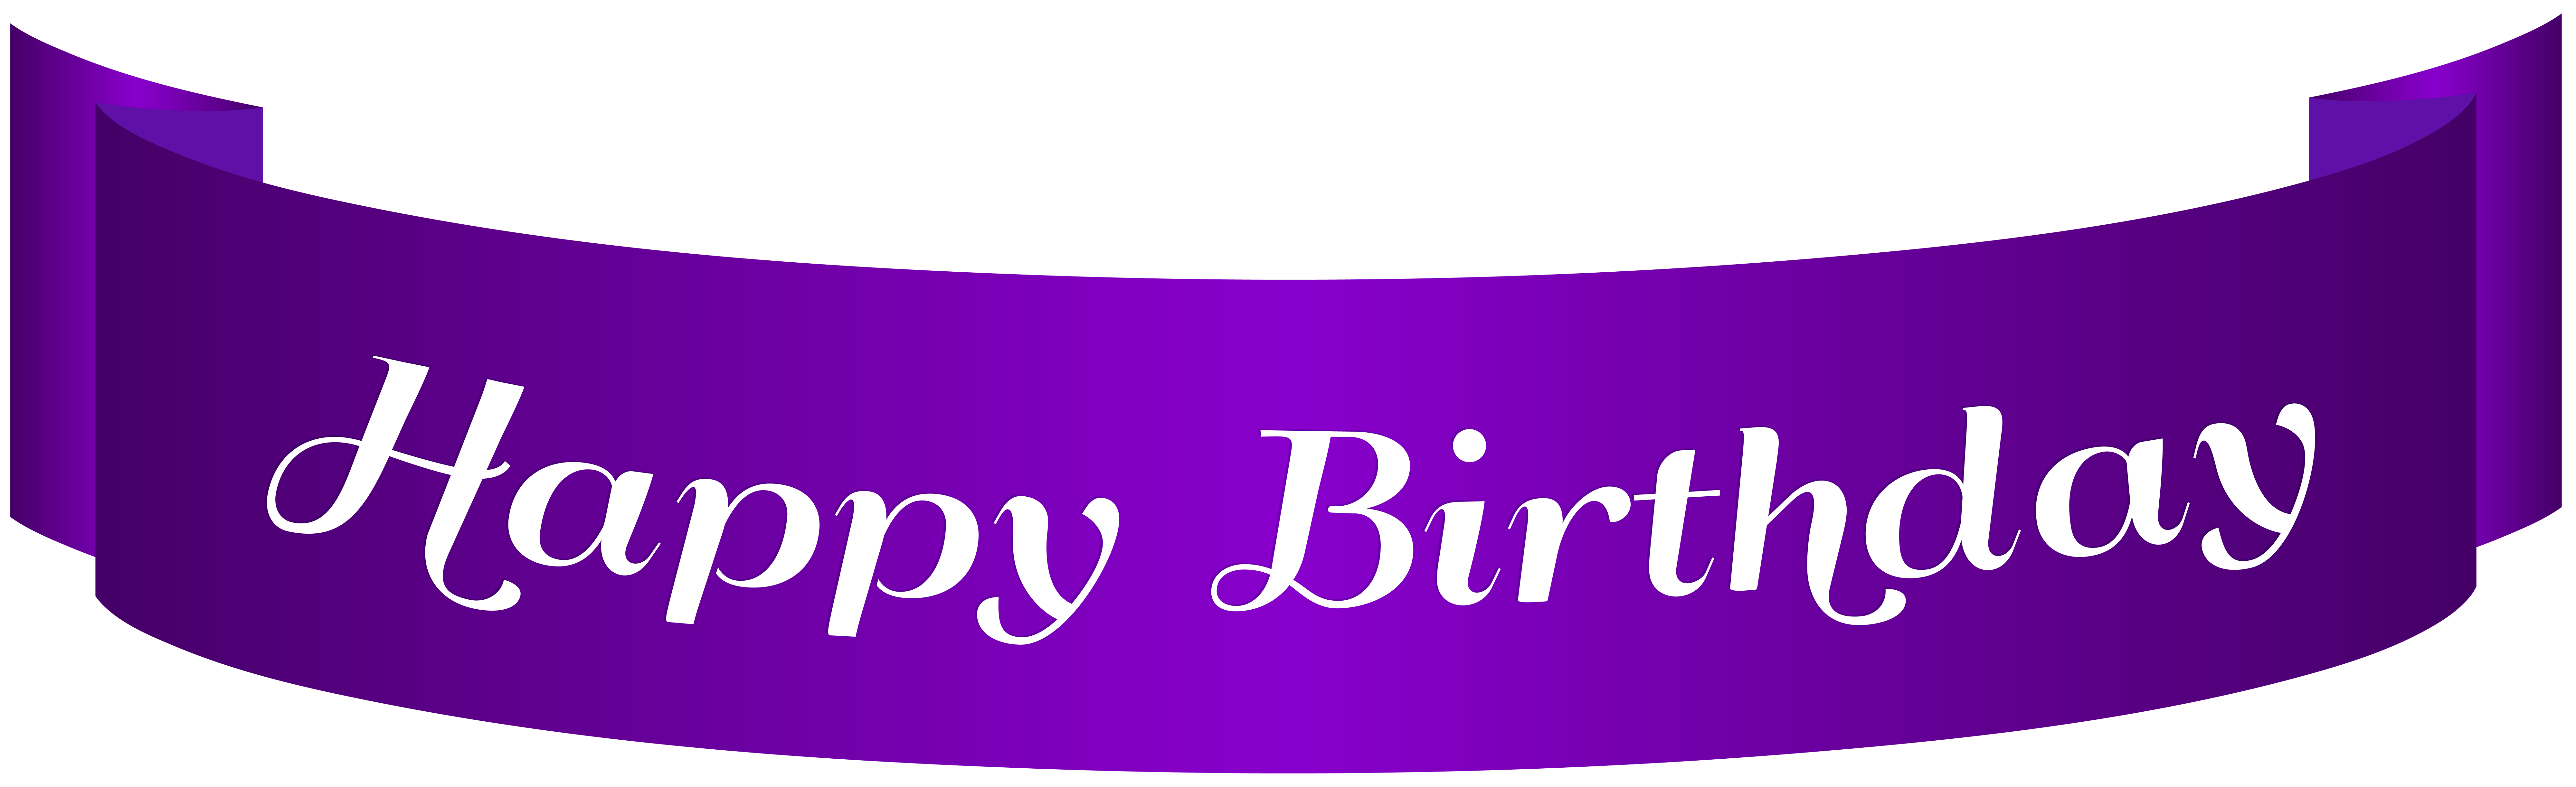 Clipart castle purple. Happy birthday banner png